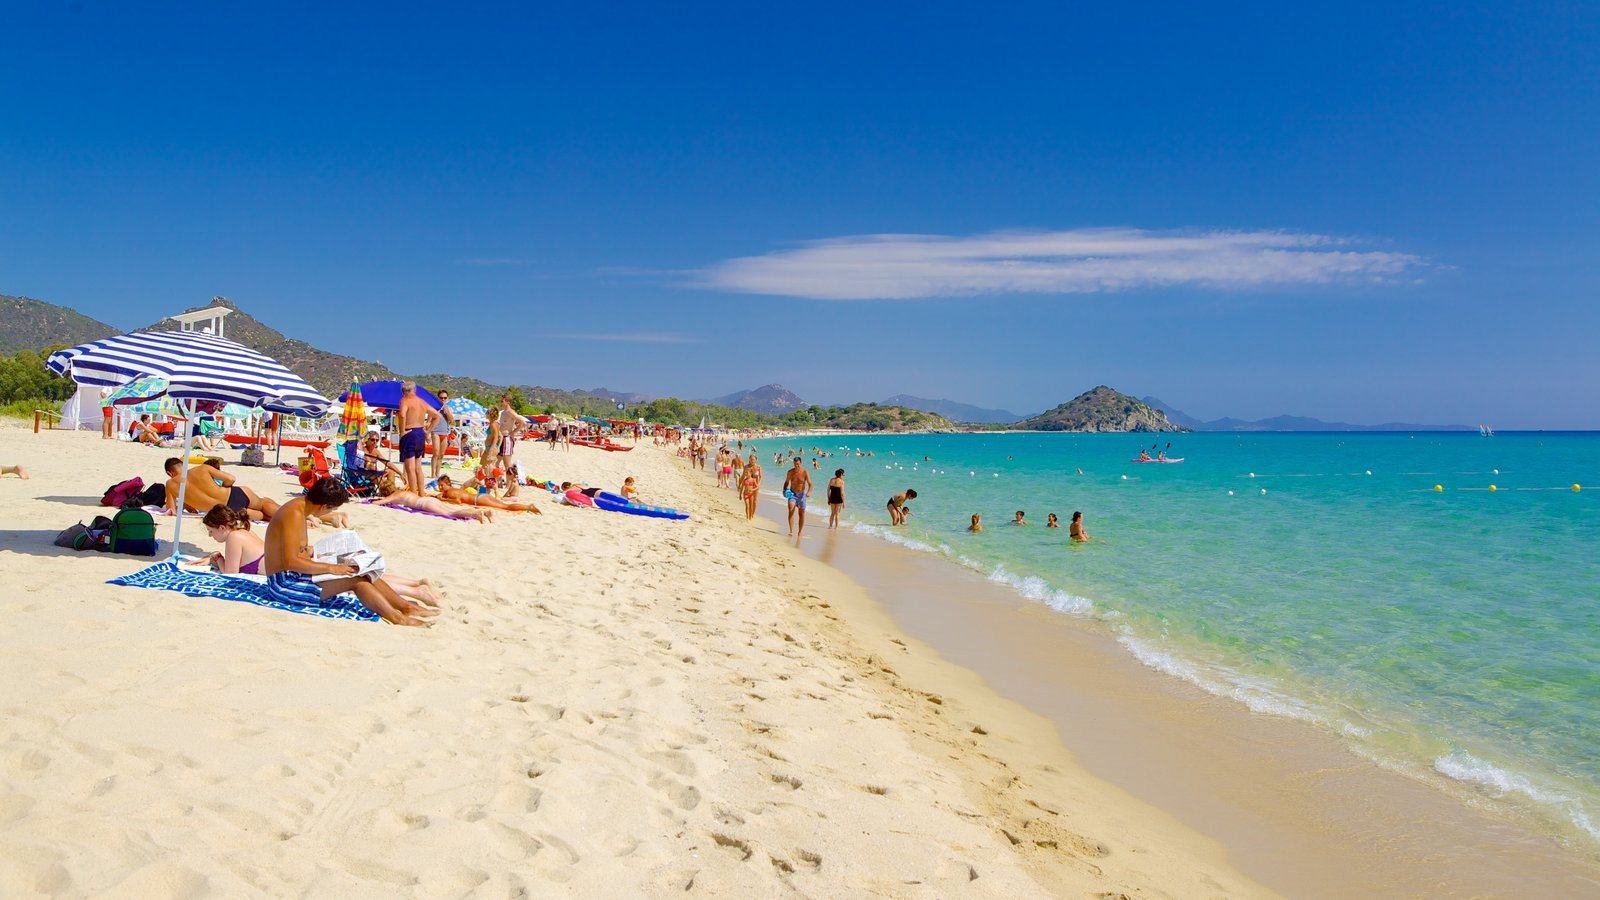 Cala Sinzias featuring a sandy beach as well as a large group of people